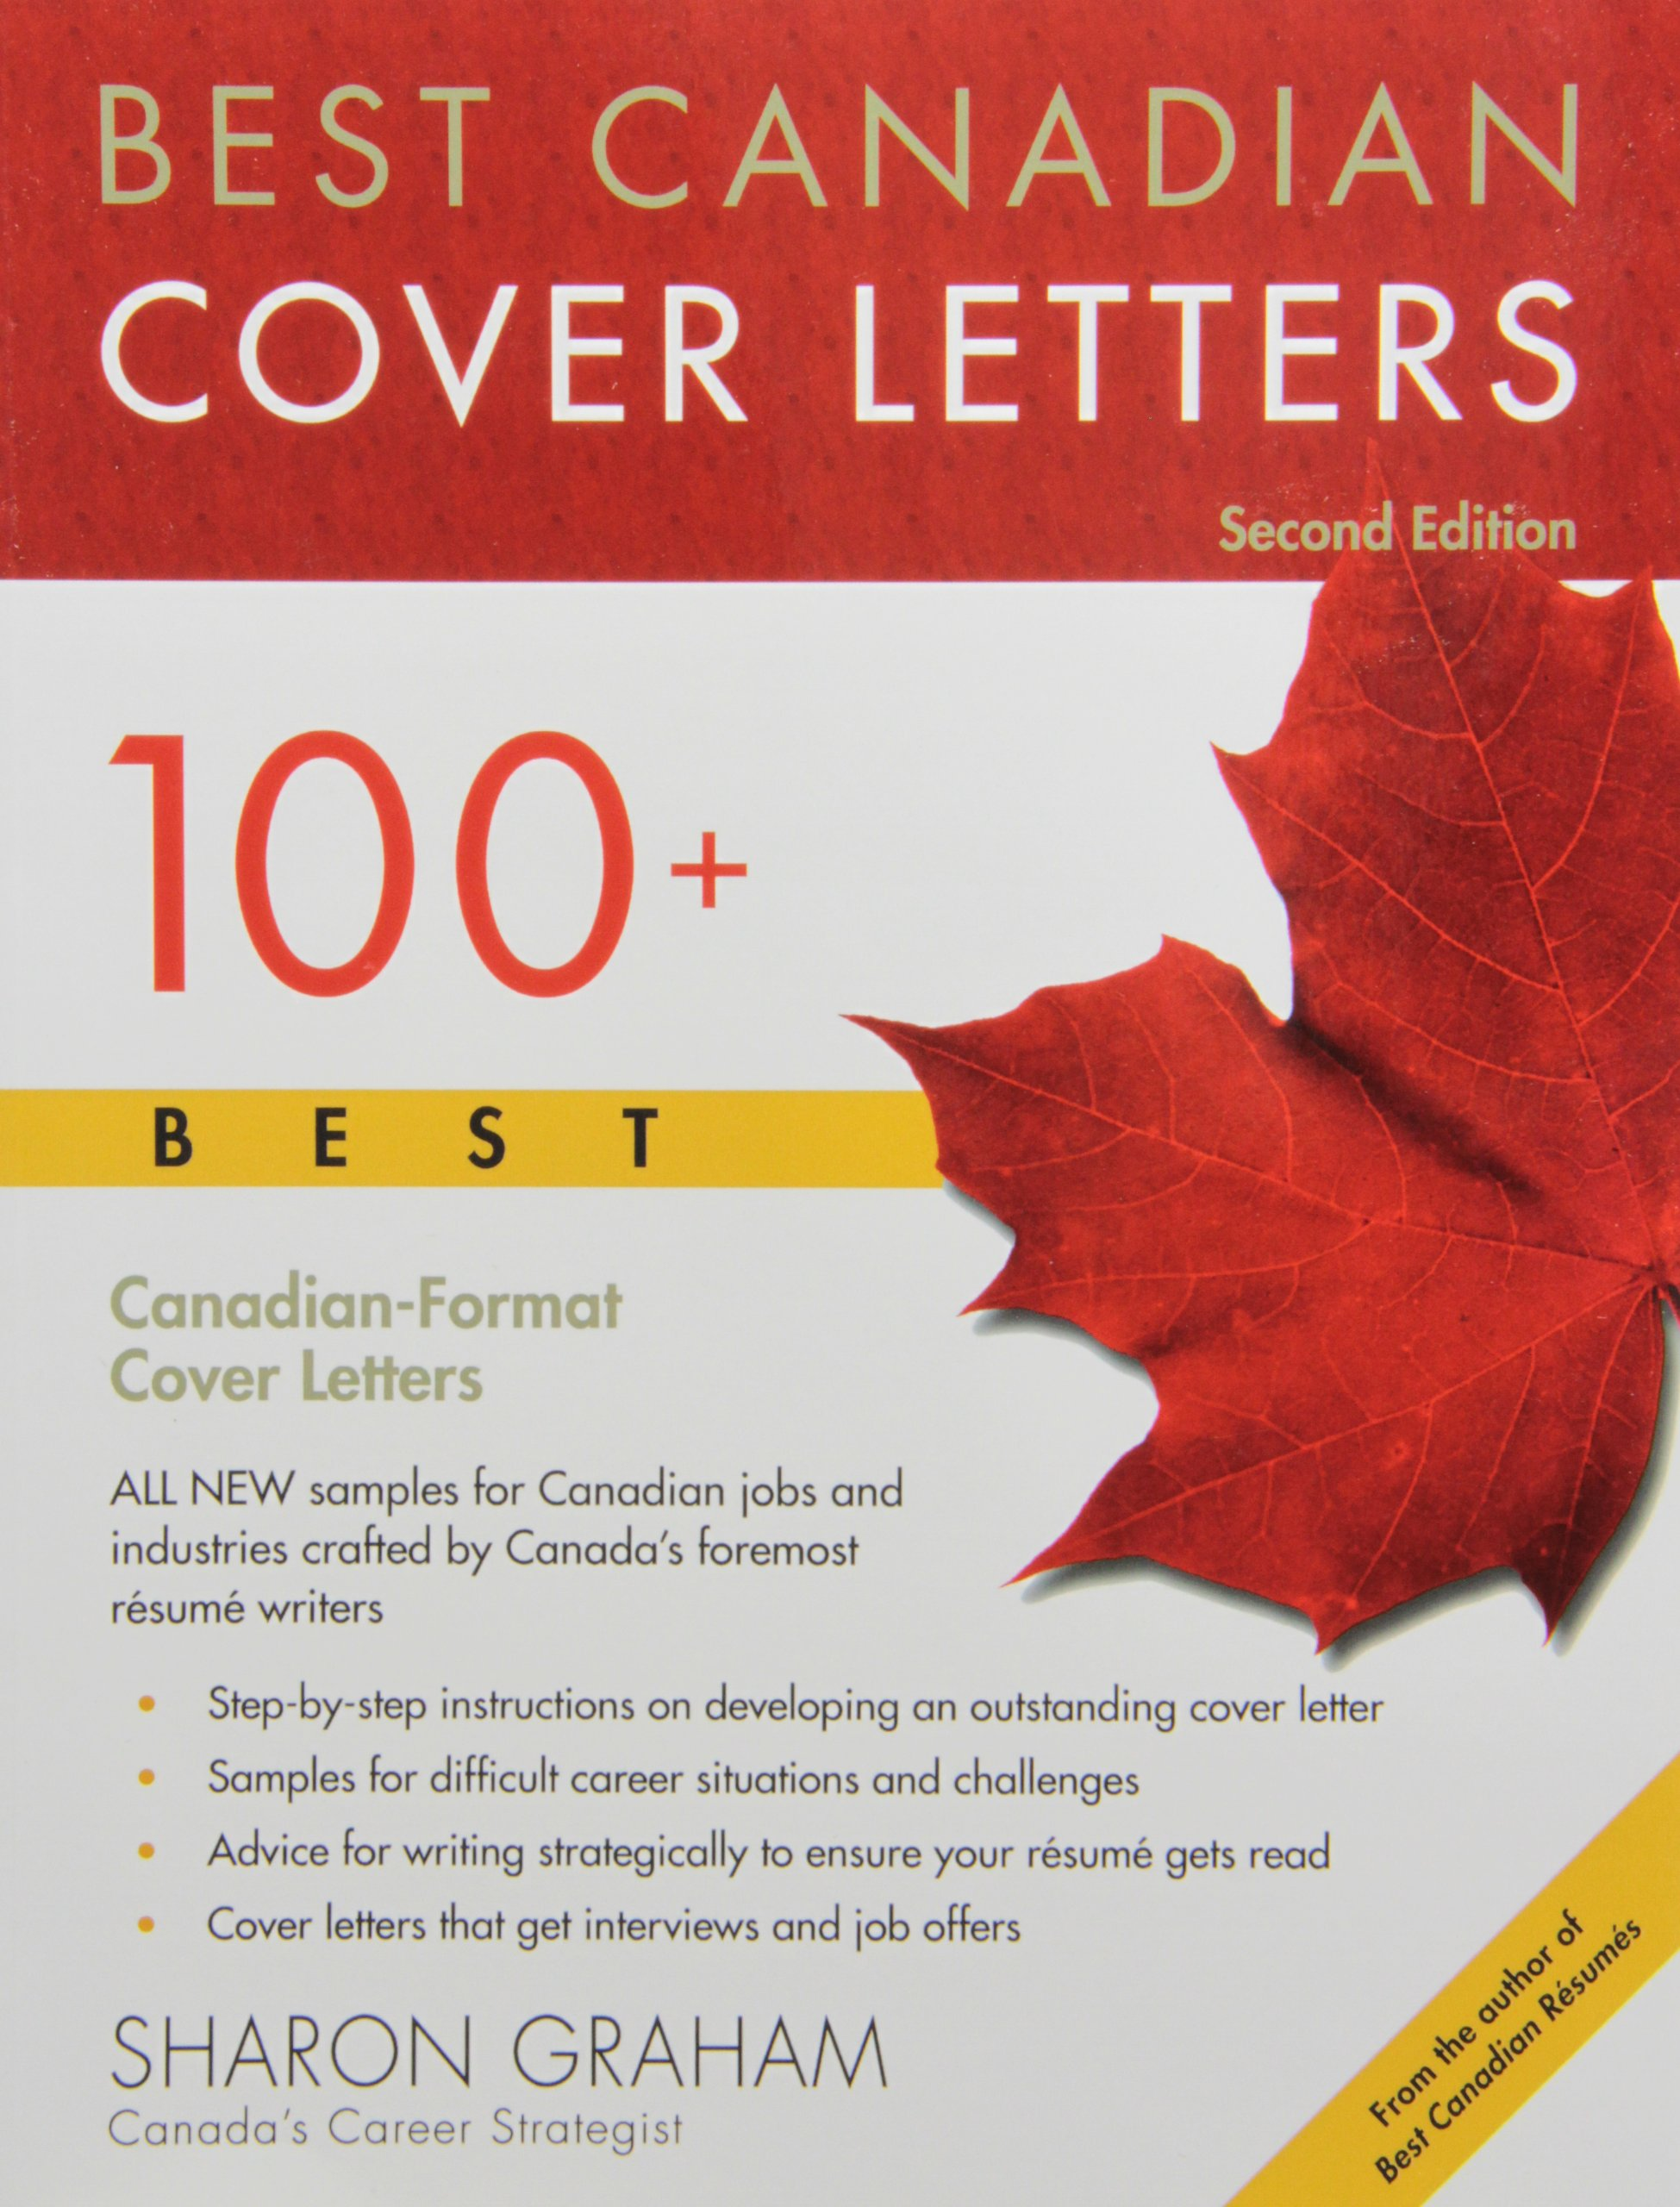 Best Canadian Cover Letters: 100+ Best Canadian-Format Cover Letters ...